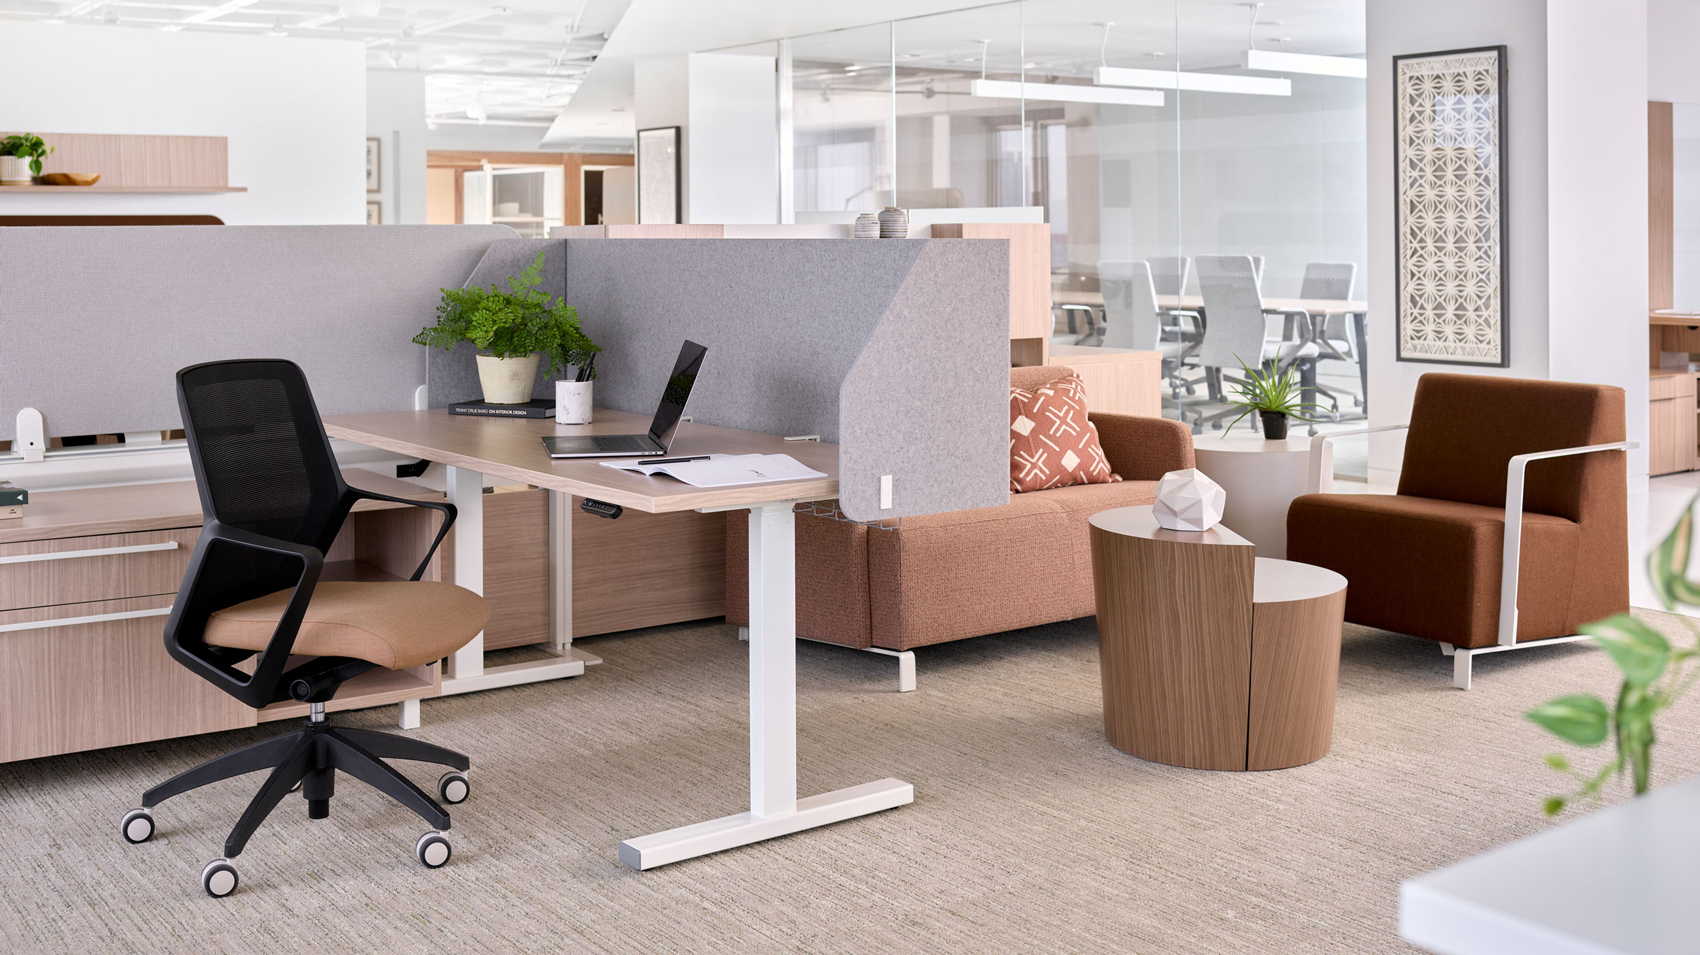 New York City showroom featuring workstation and small lounge area